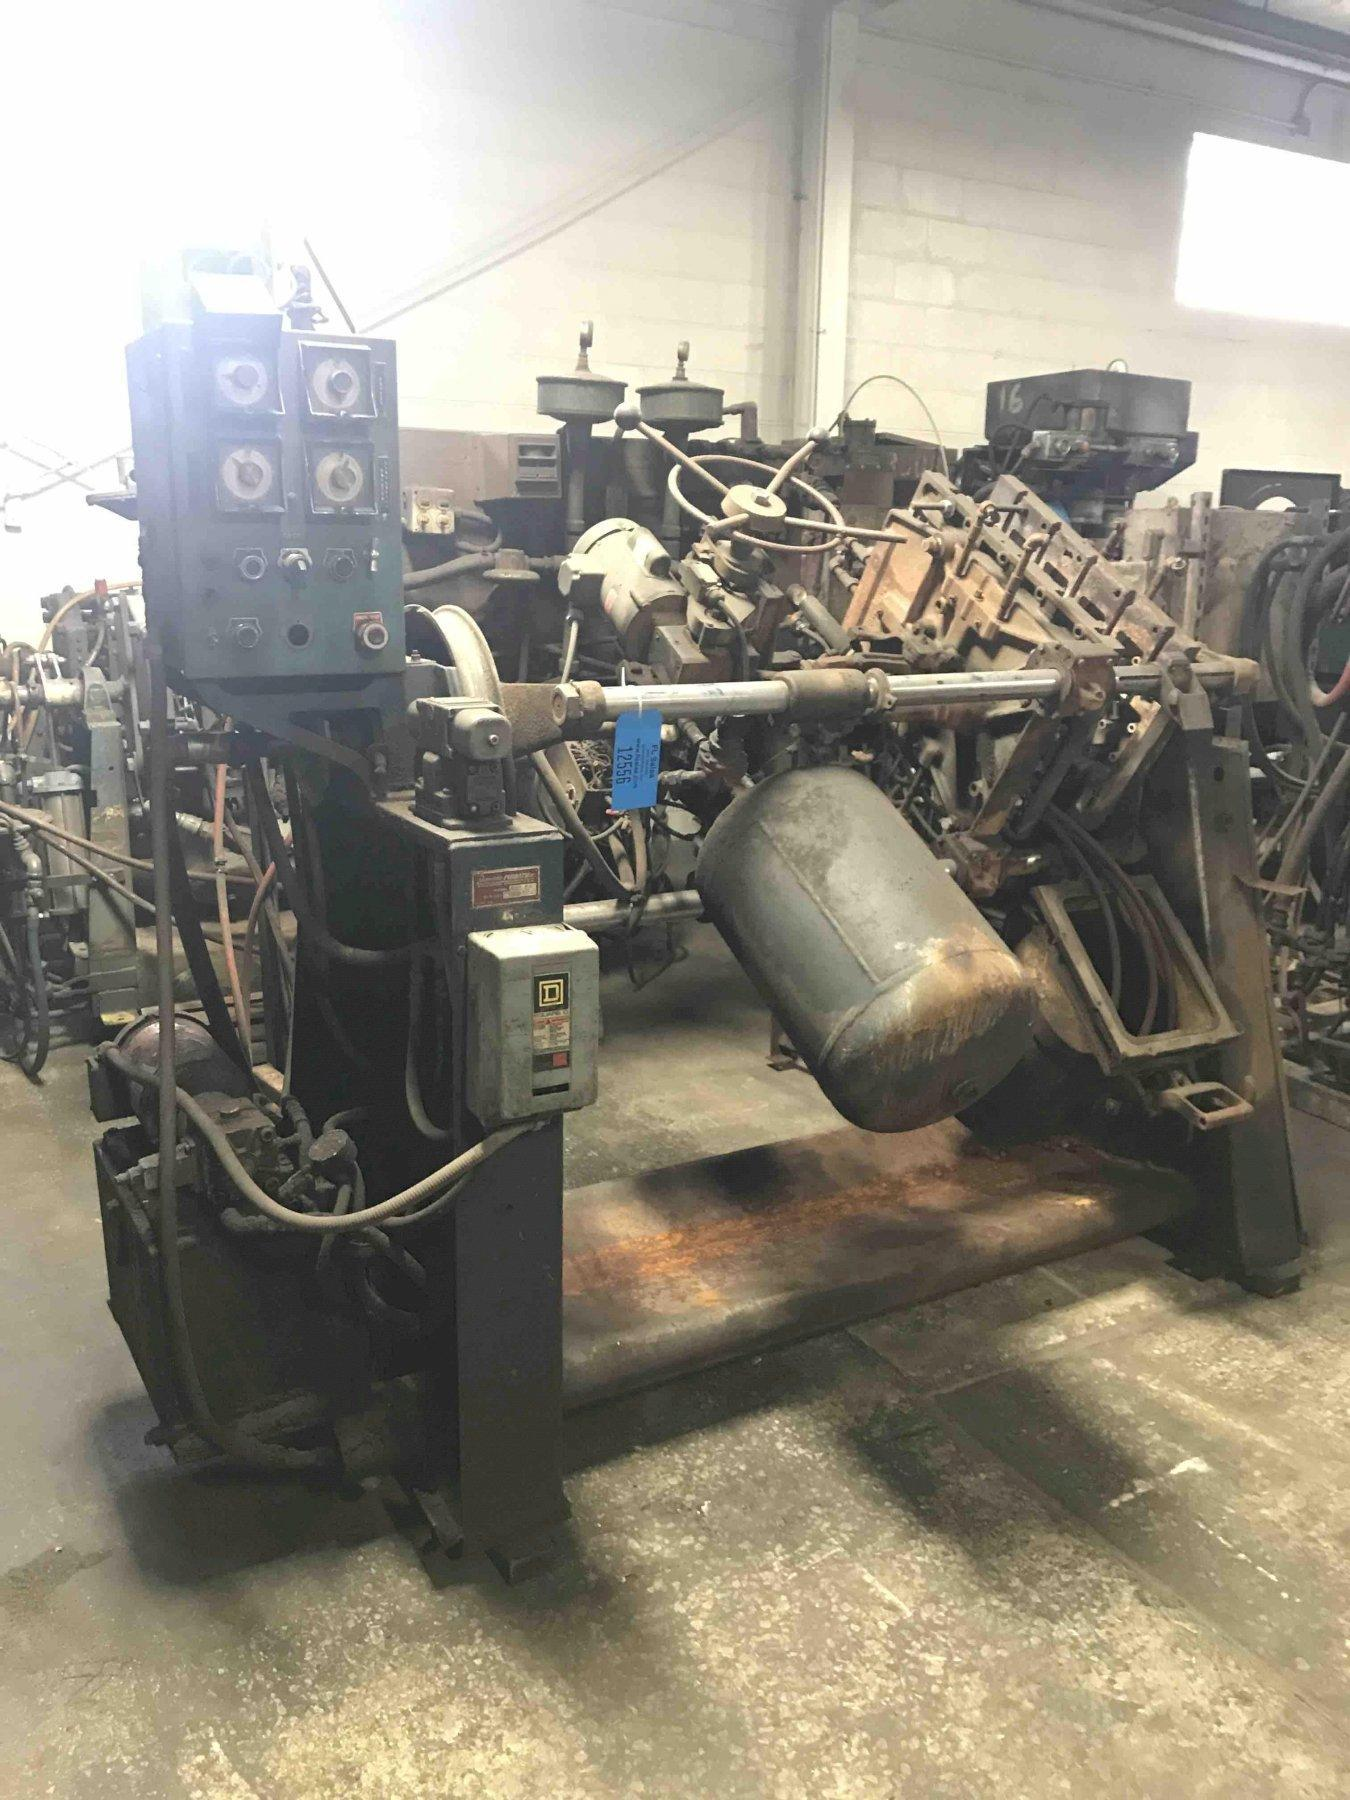 Dependable model 400sa shell core machine s/n 129 with gas panel